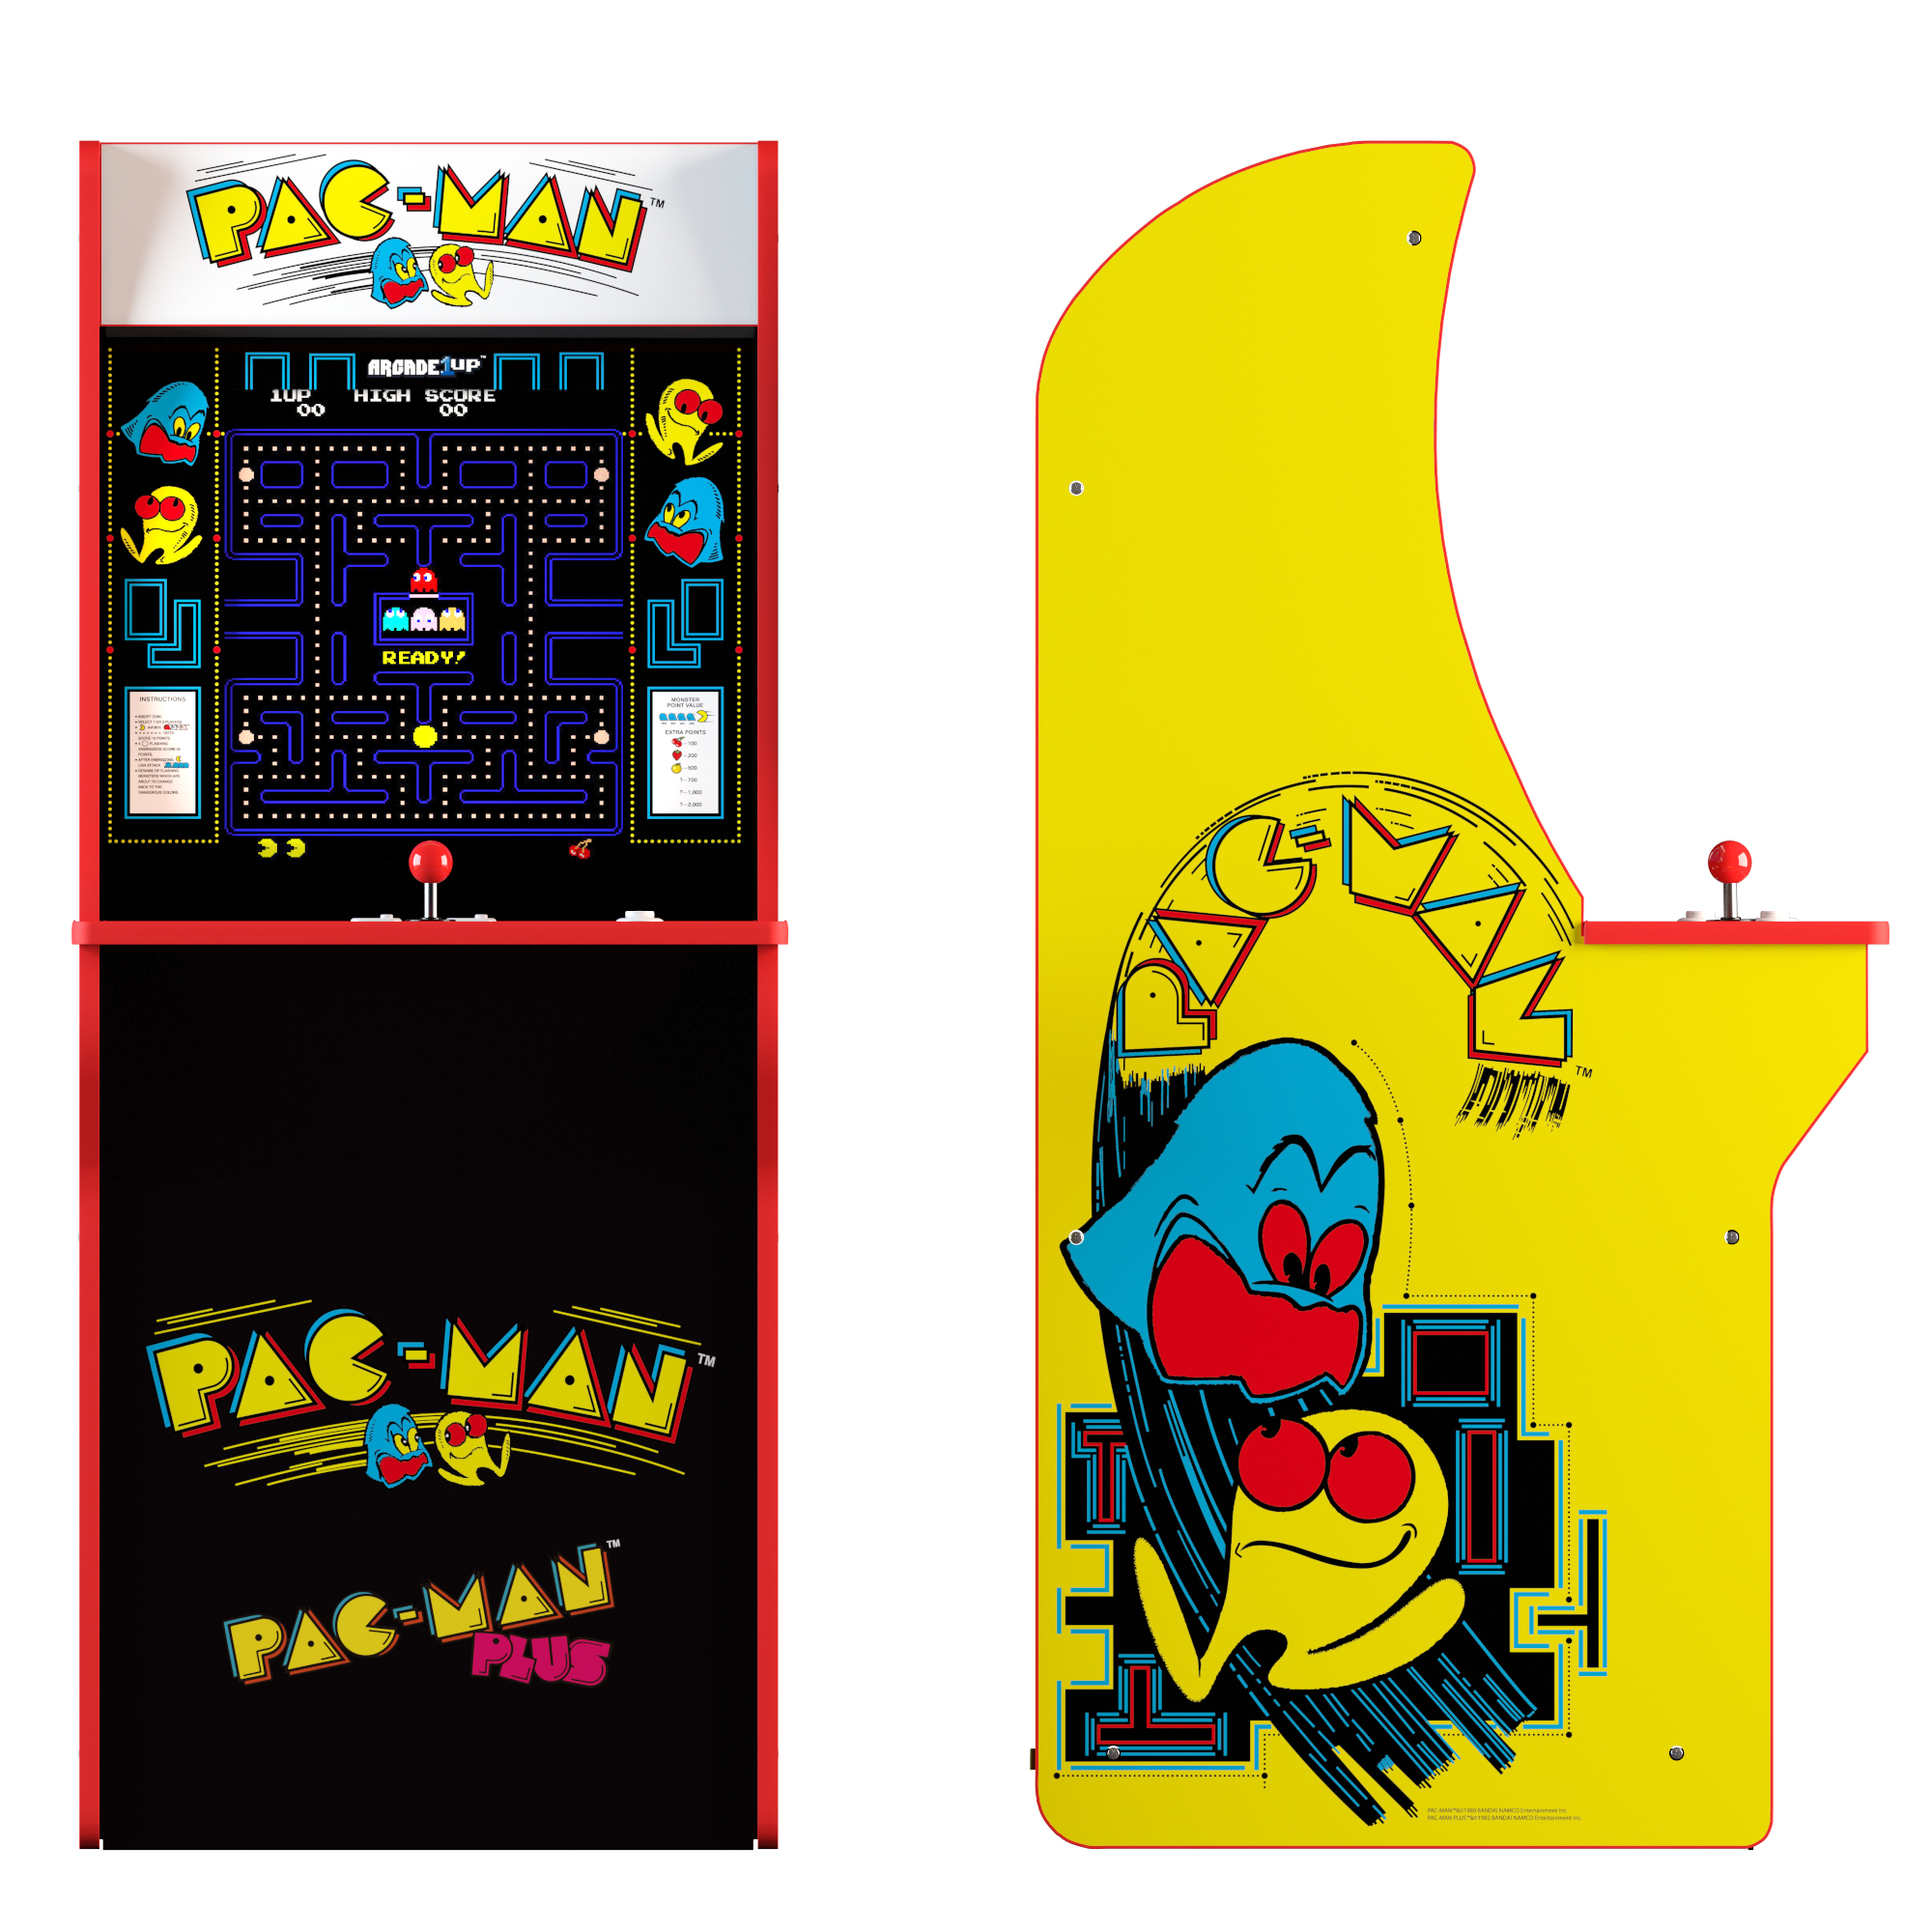 PacMan Font and Side 5.7.18.jpg